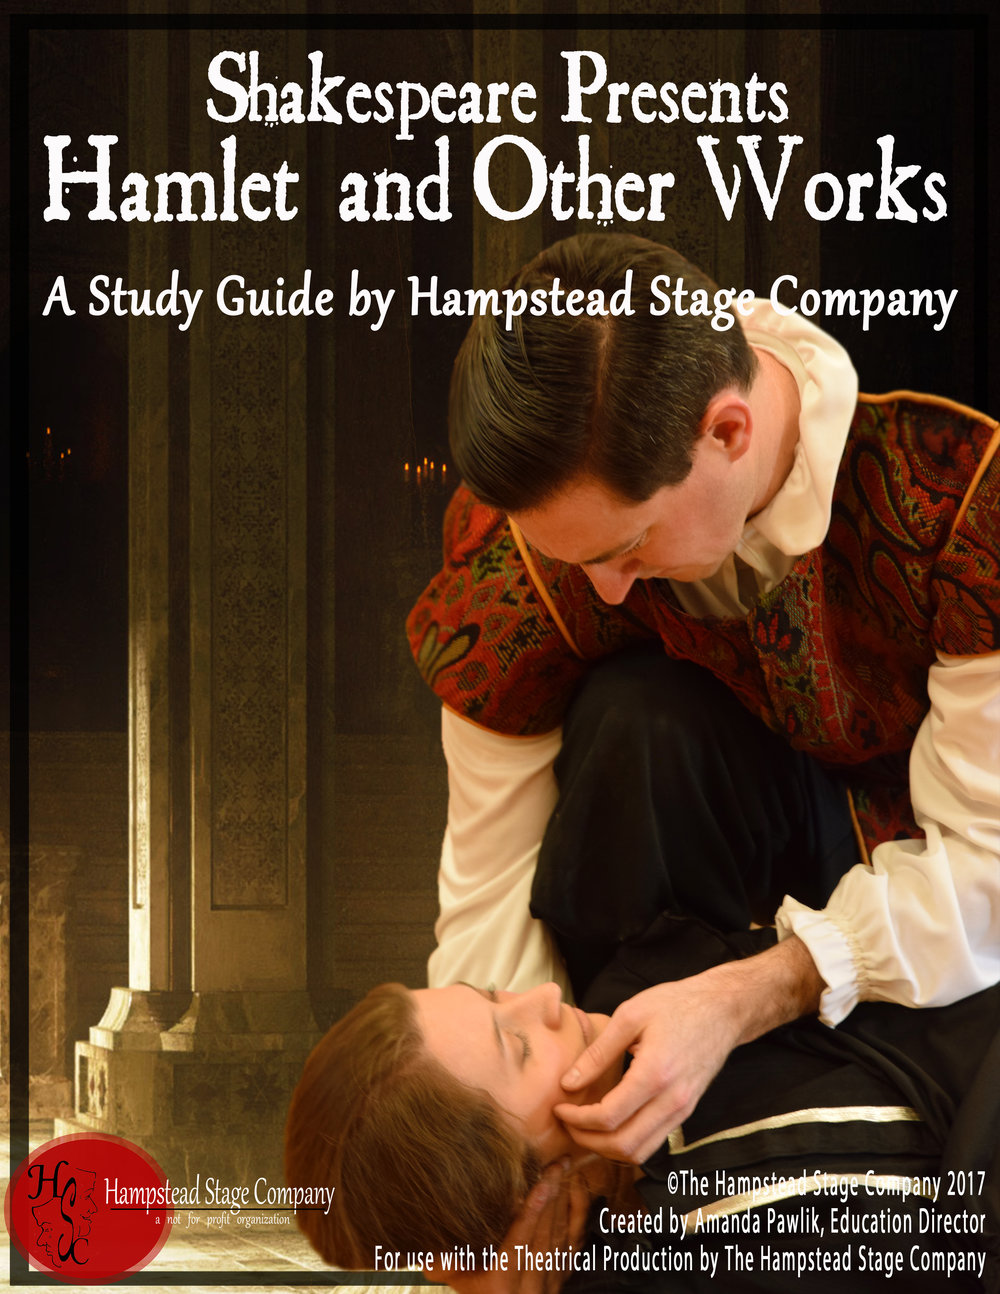 shakespeare present hamlet cover study guide.jpg